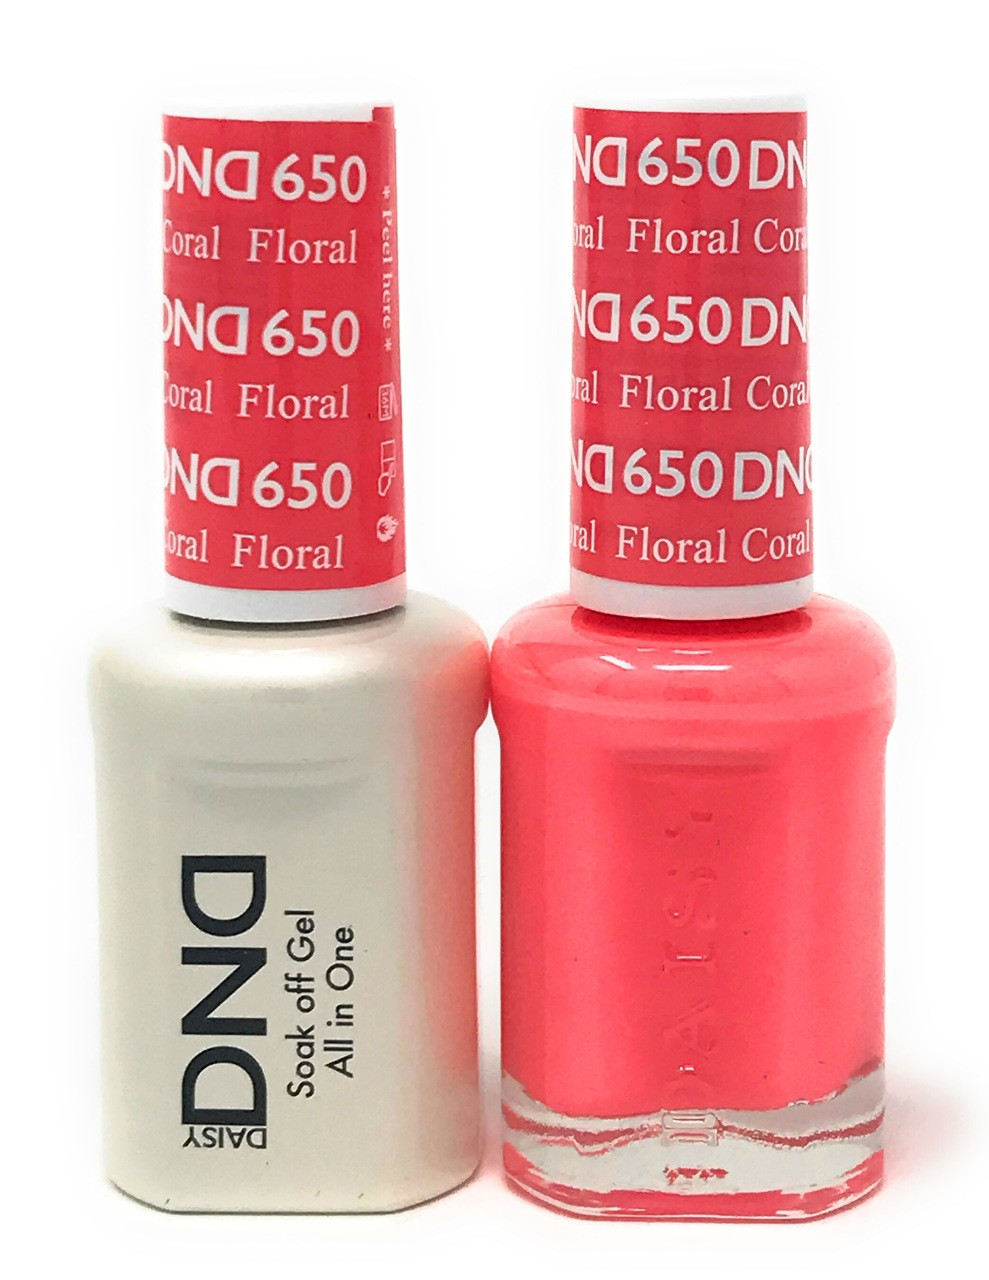 DND SOAK OFF GEL POLISH DUO DIVA COLLECTION | FLORAL CORAL, 650 ...